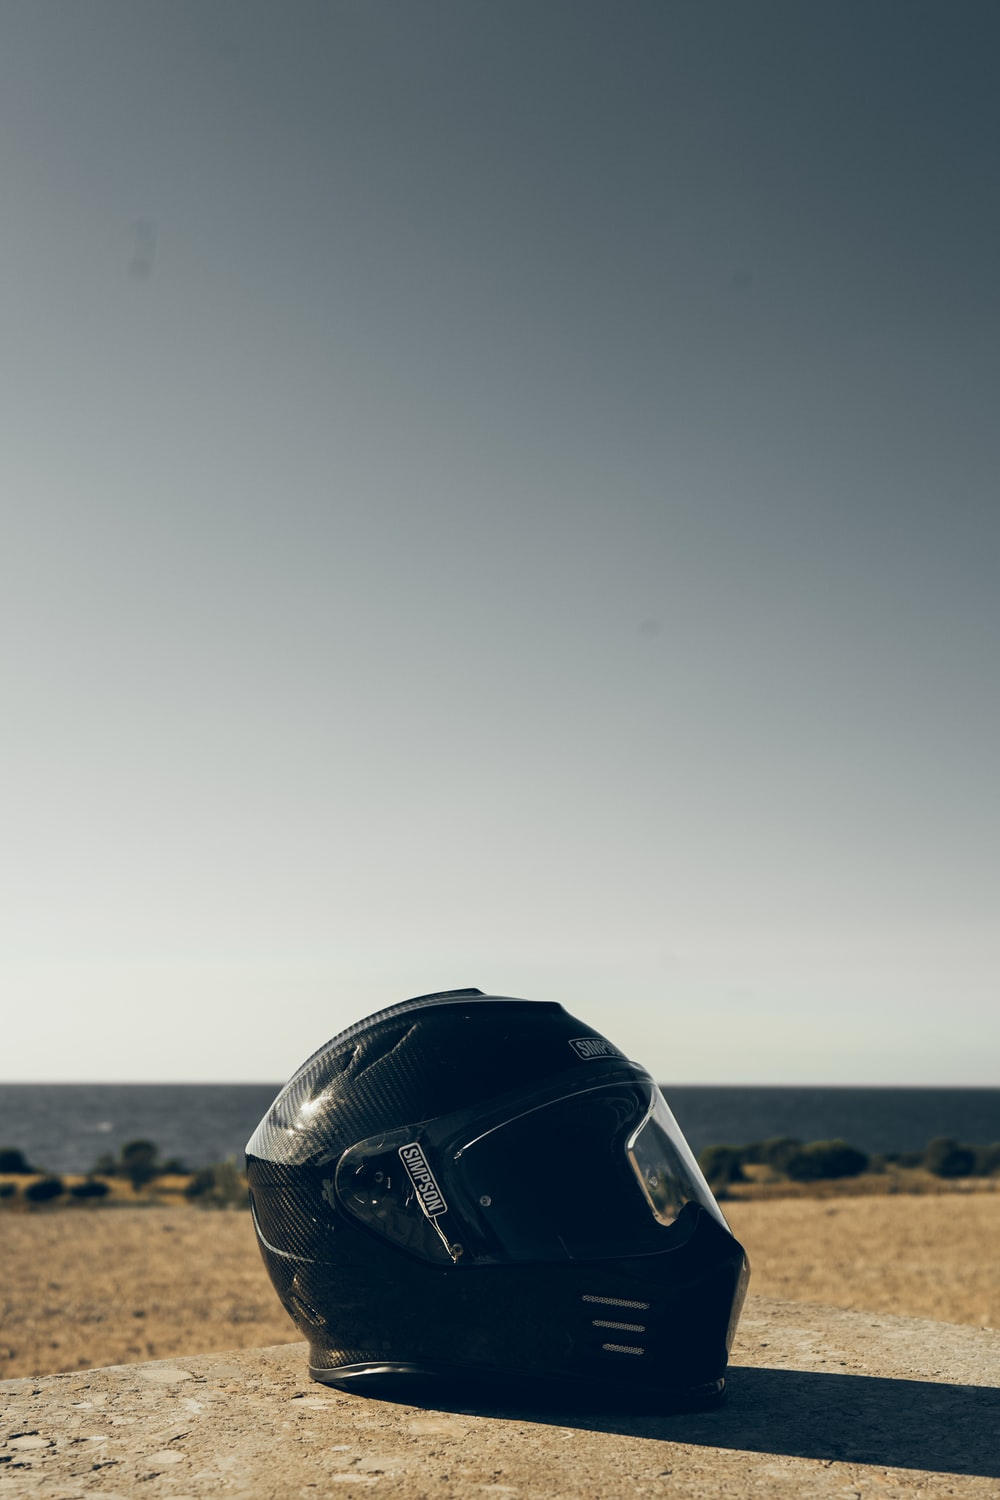 black motorcycle helmet on brown sand during daytime